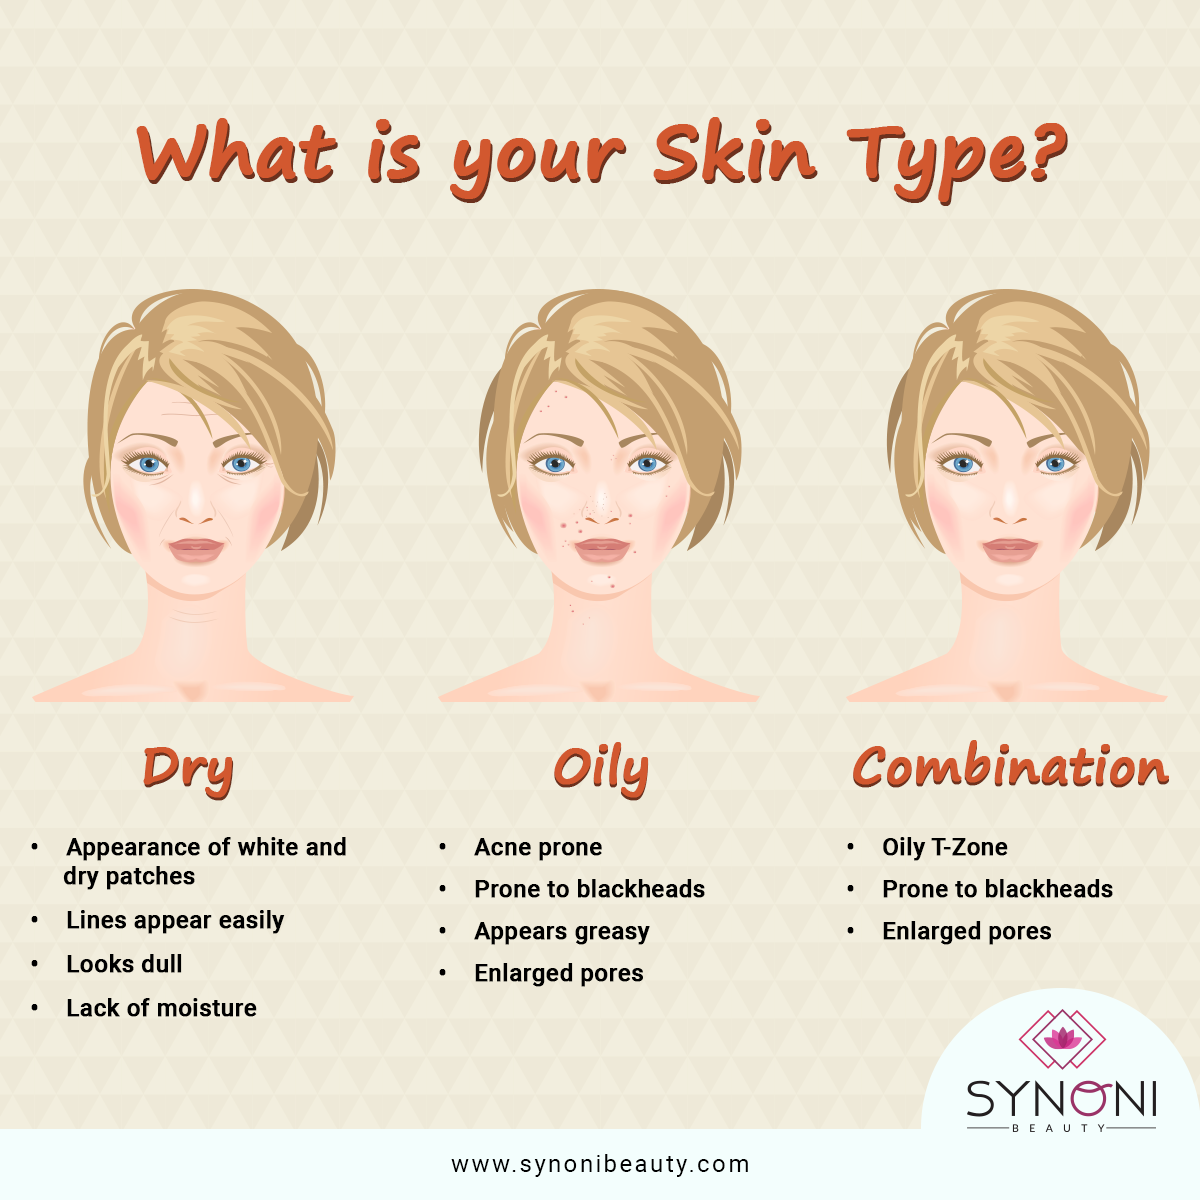 Know Your Skin Type Today So That You Can Determine Your Skincare Routine Accordingly Skincare Wakeupandmakeup Wednes Skin Types Skin Care Skin Types Chart